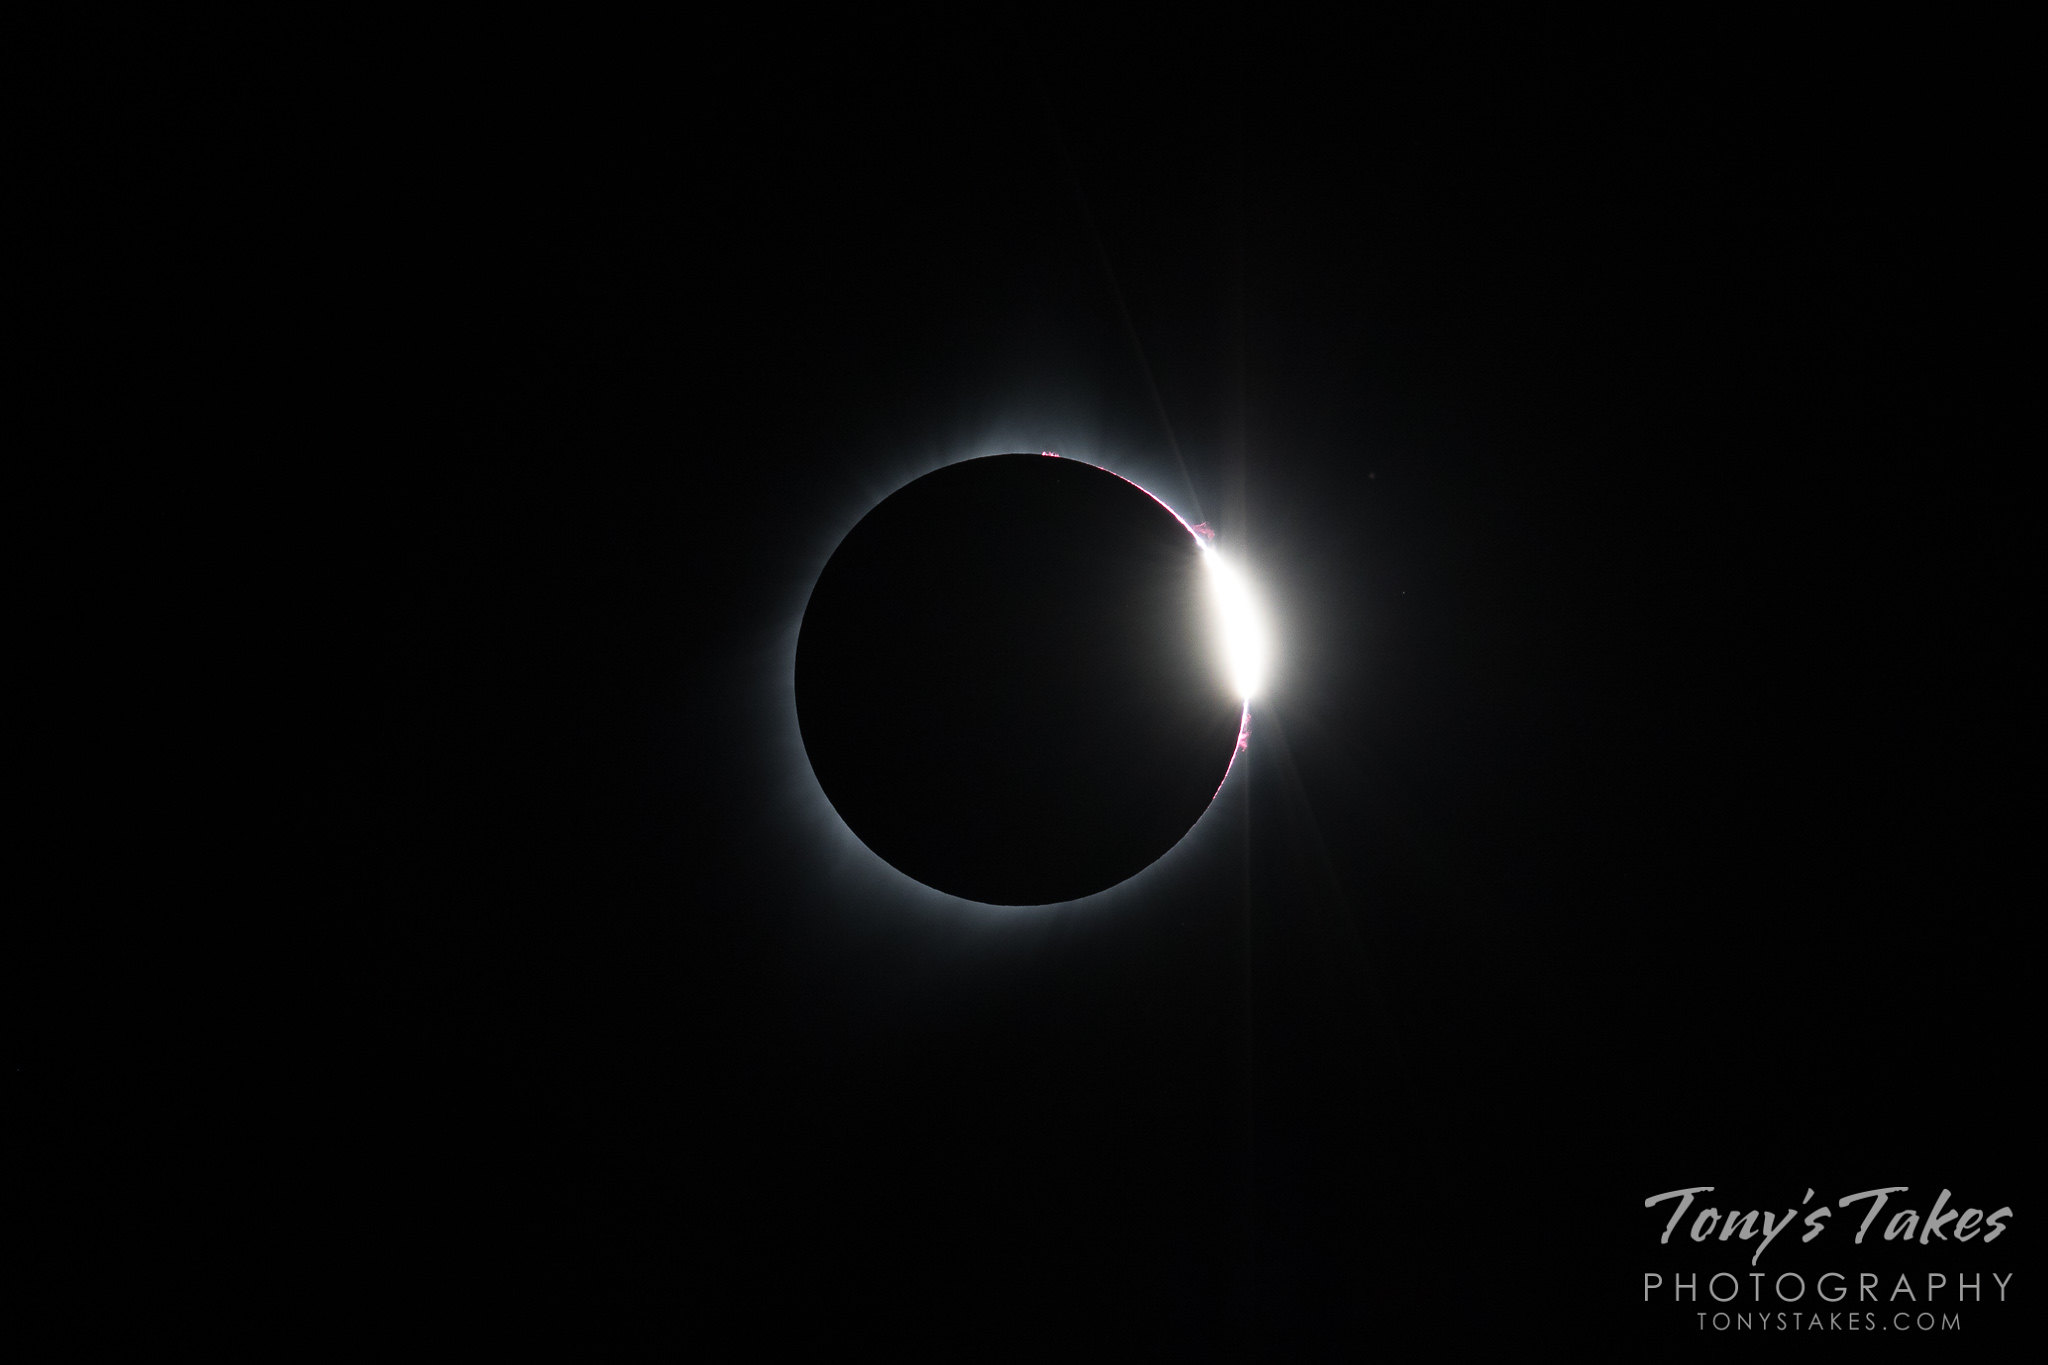 Solar eclipse shows the diamond ring and prominences